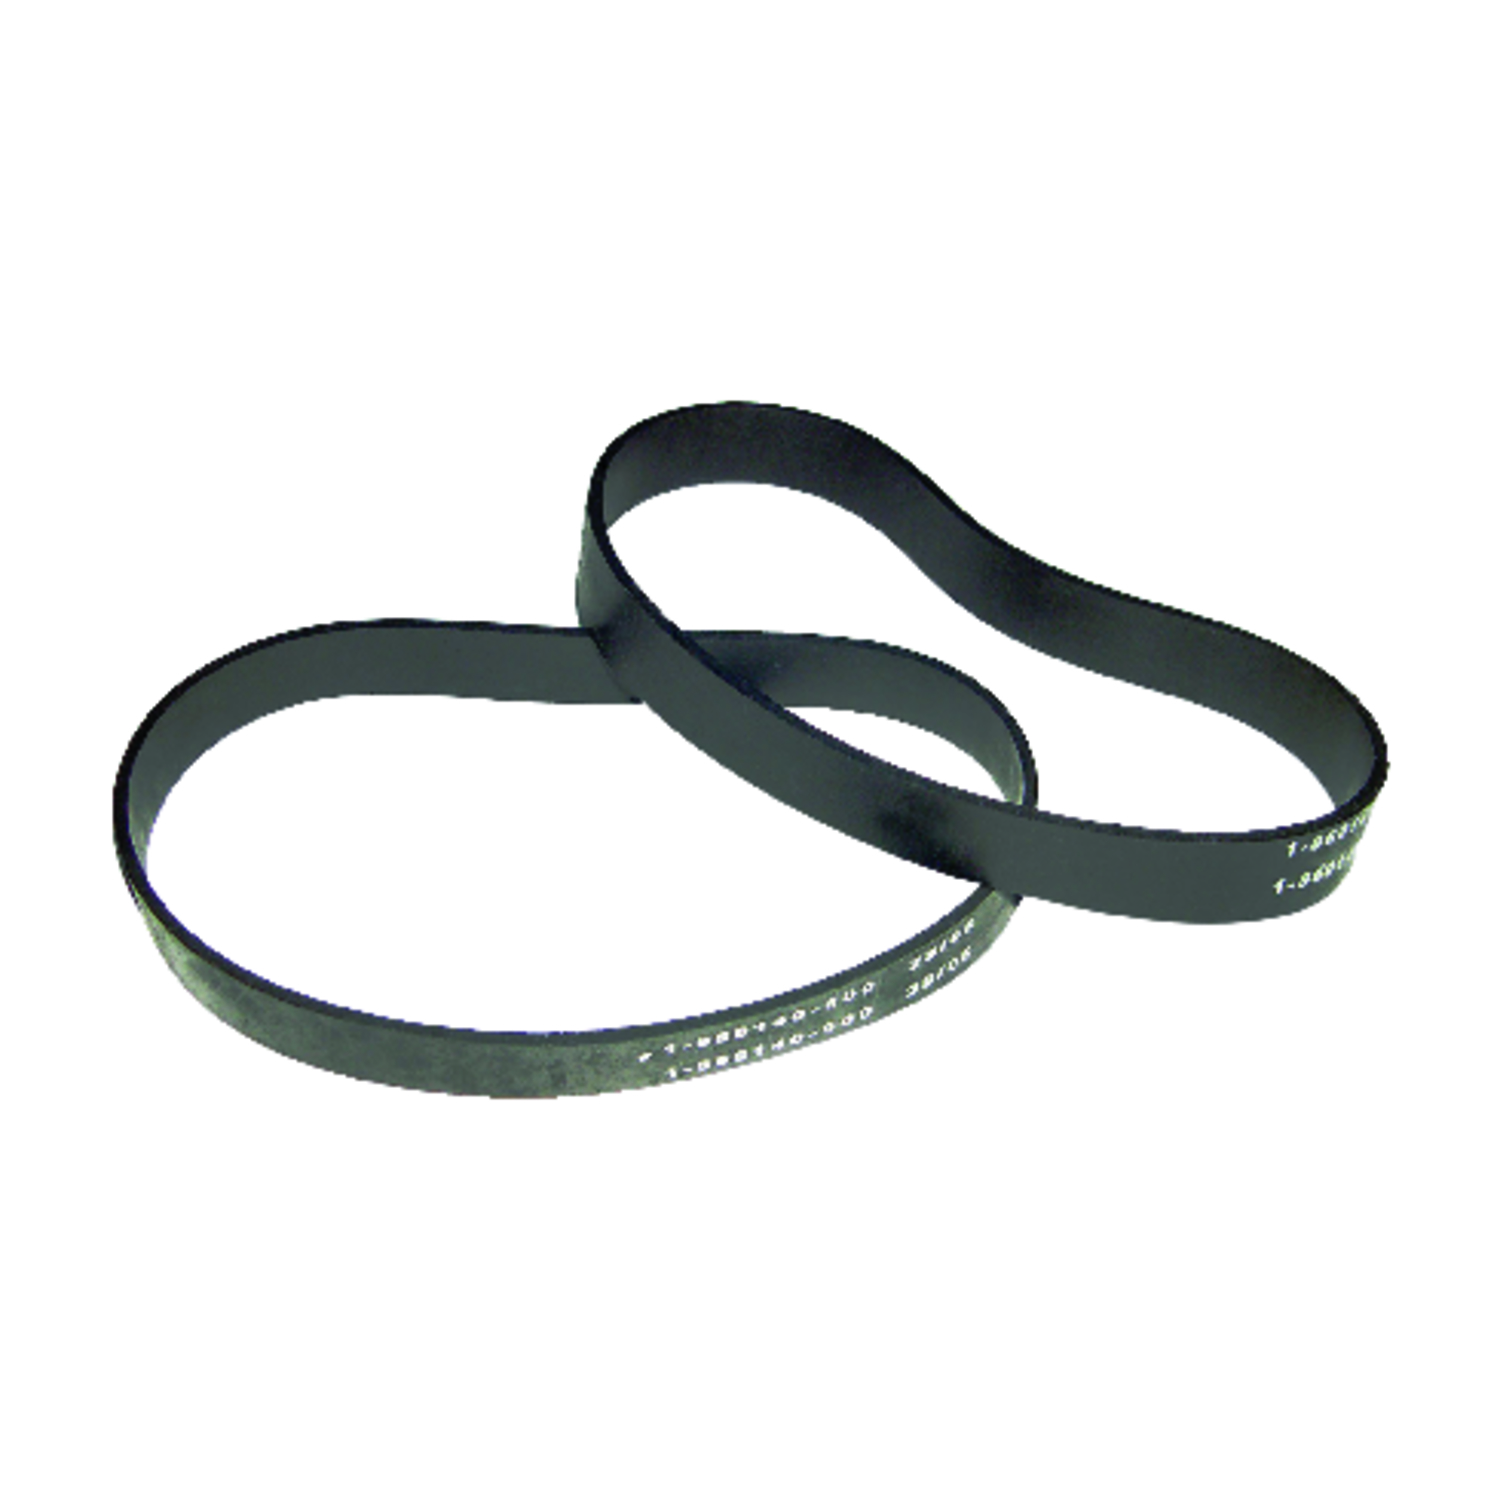 Dirt Devil Vision Lite Vacuum Belt Style 10 Fits Dirt Devil Vision Lite Polybagged 2 / Pack